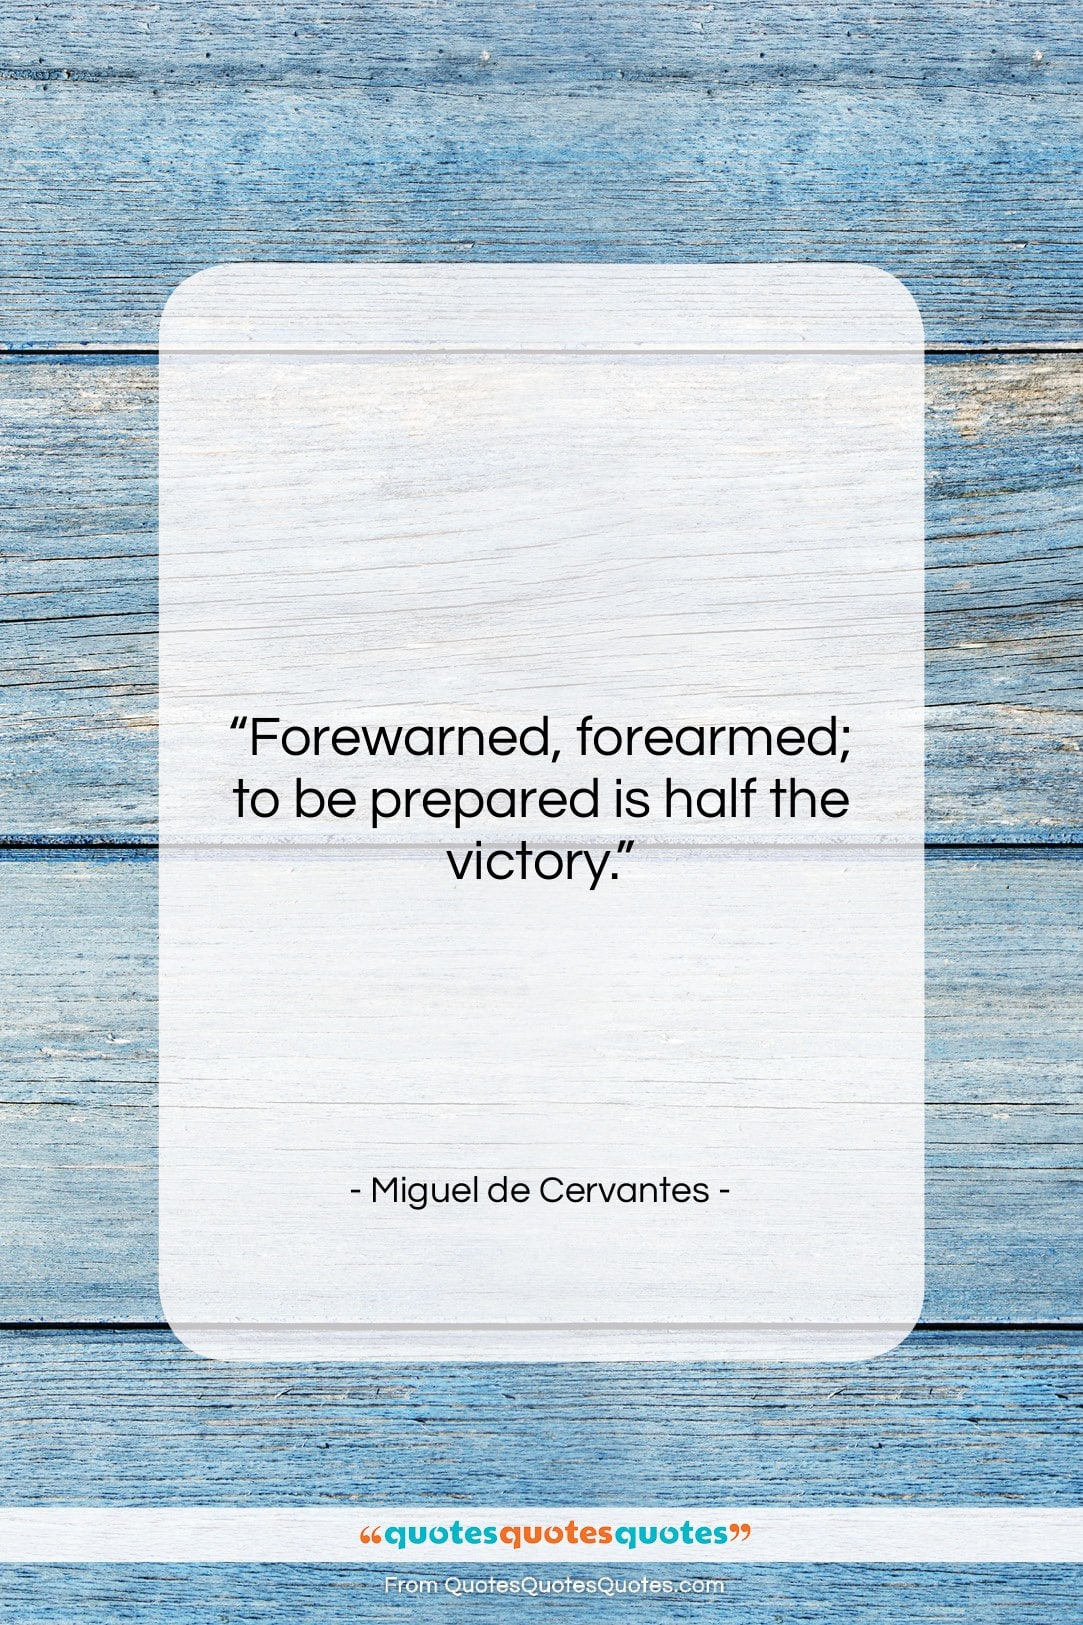 """Miguel de Cervantes quote: """"Forewarned, forearmed; to be prepared is half…""""- at QuotesQuotesQuotes.com"""